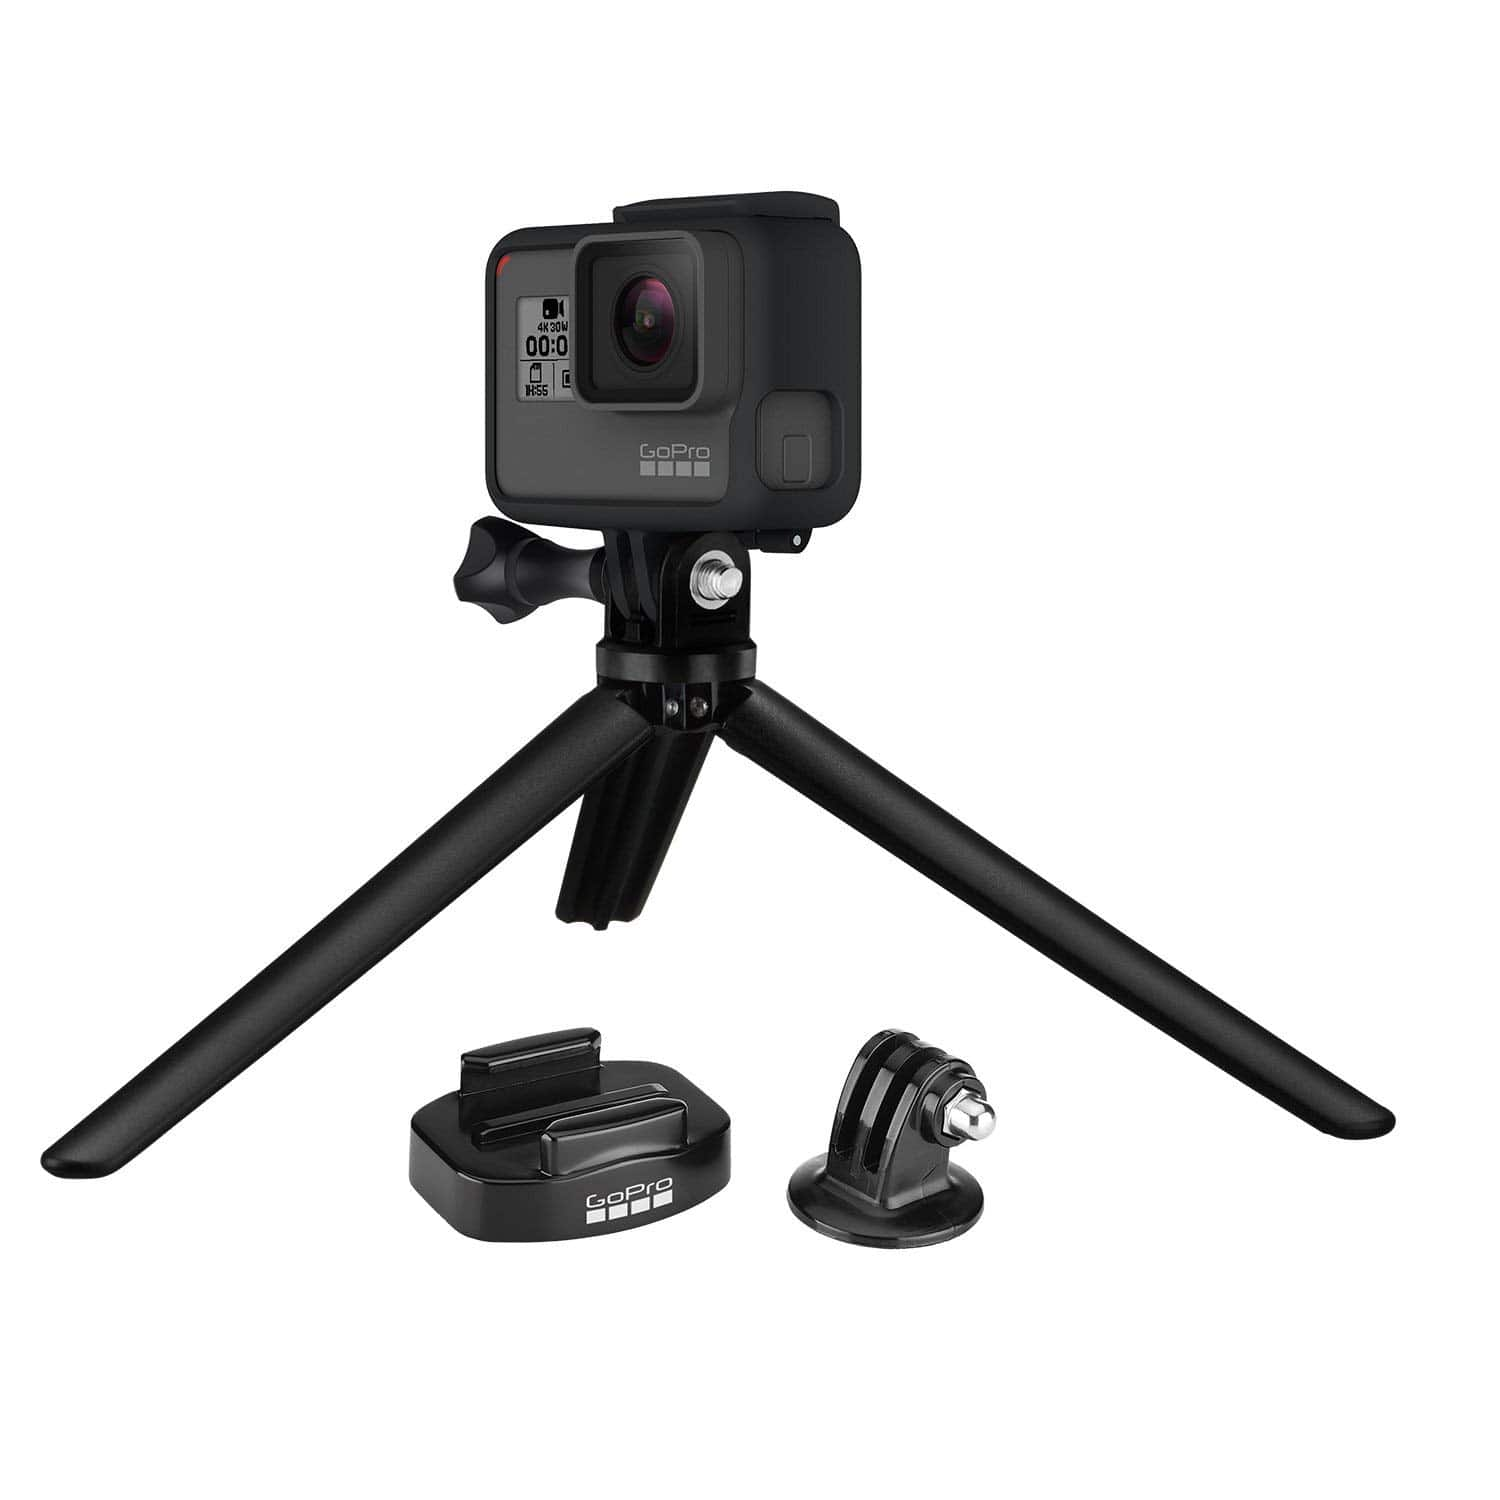 tripod mount and mini tripod for gopro